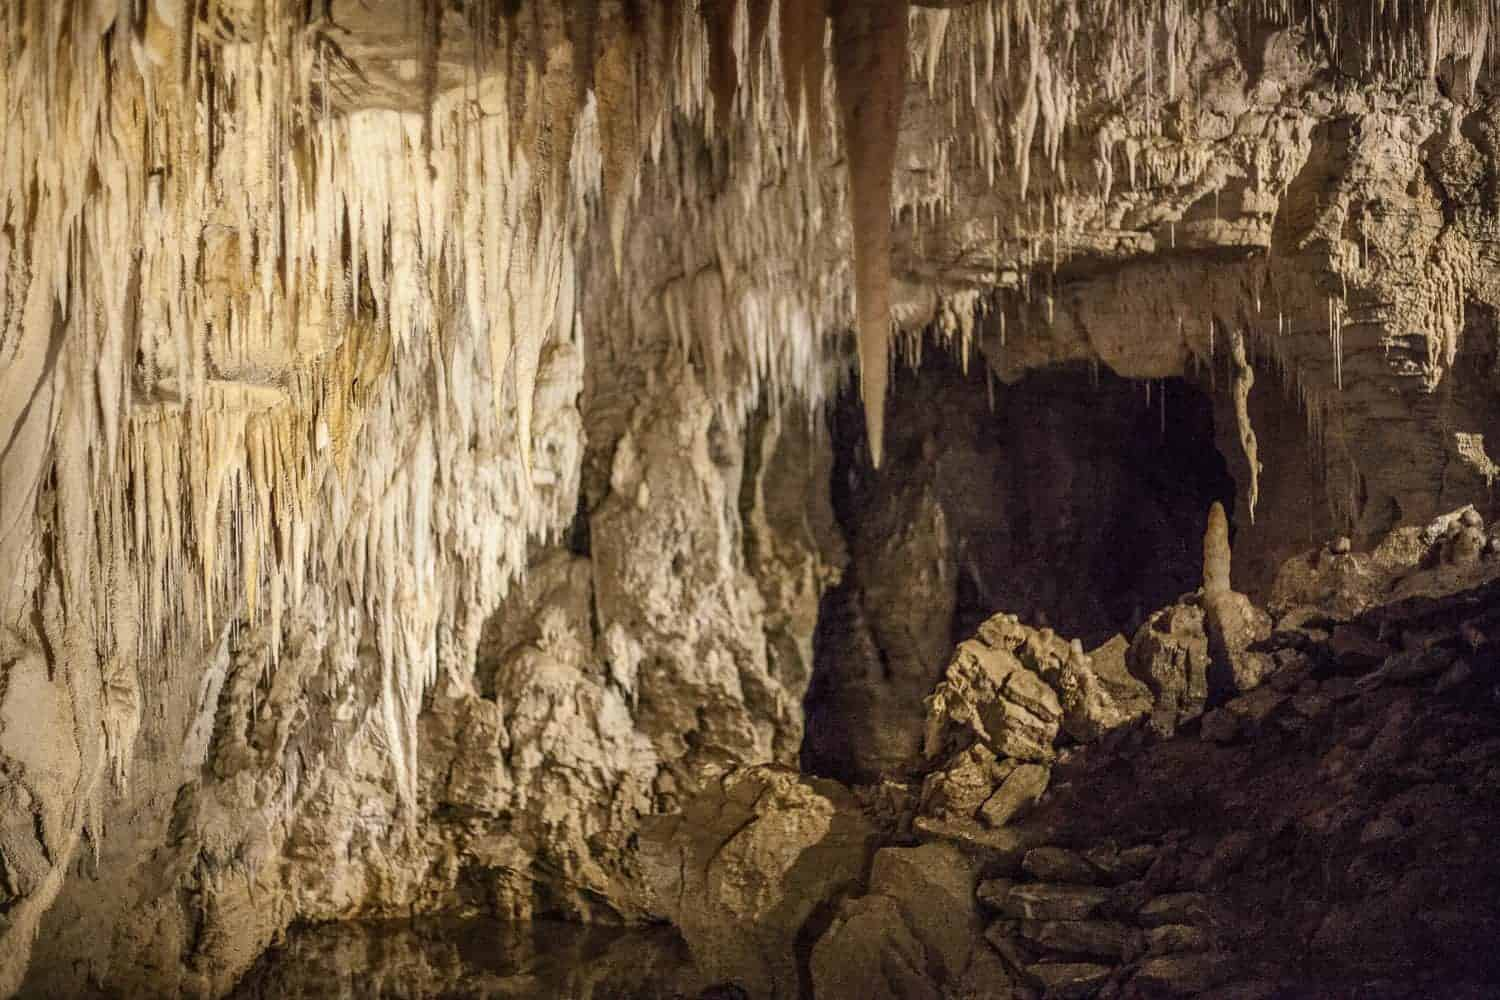 Waitomo cave tour review